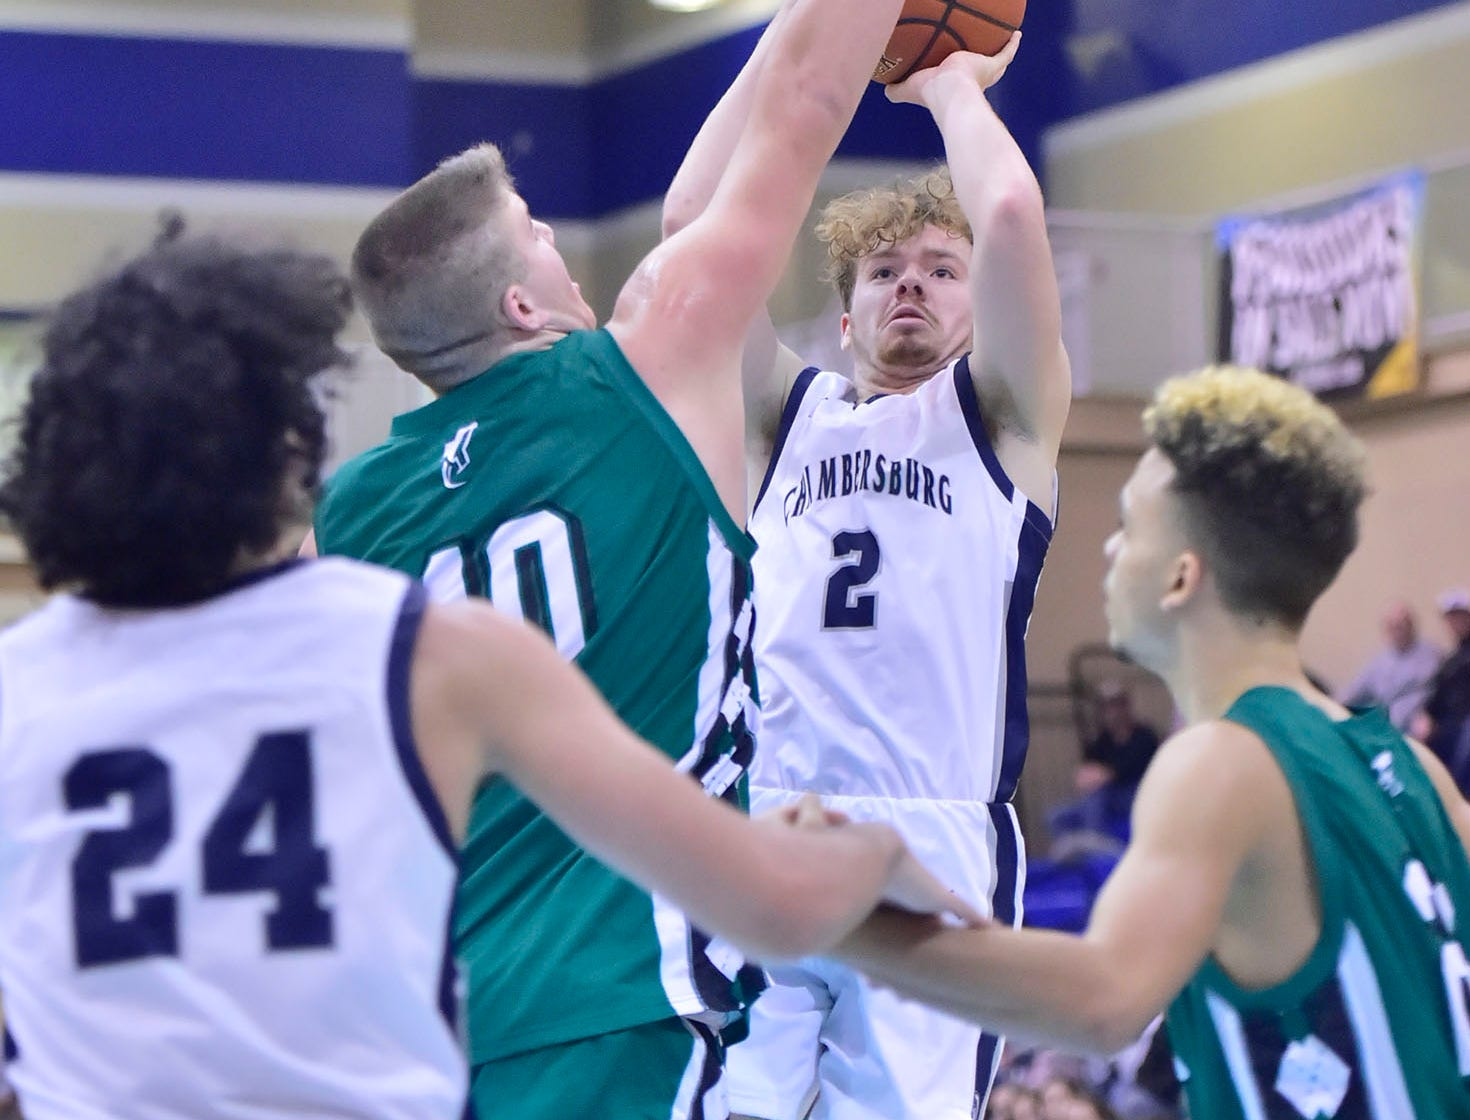 Chambersburg's Tucker Perry (2) shoot over James Buchanan defenders. Chambersburg played James Buchanan boys during the Franklin County Tip-Off Tournament, Friday, Dec. 7, 2018.